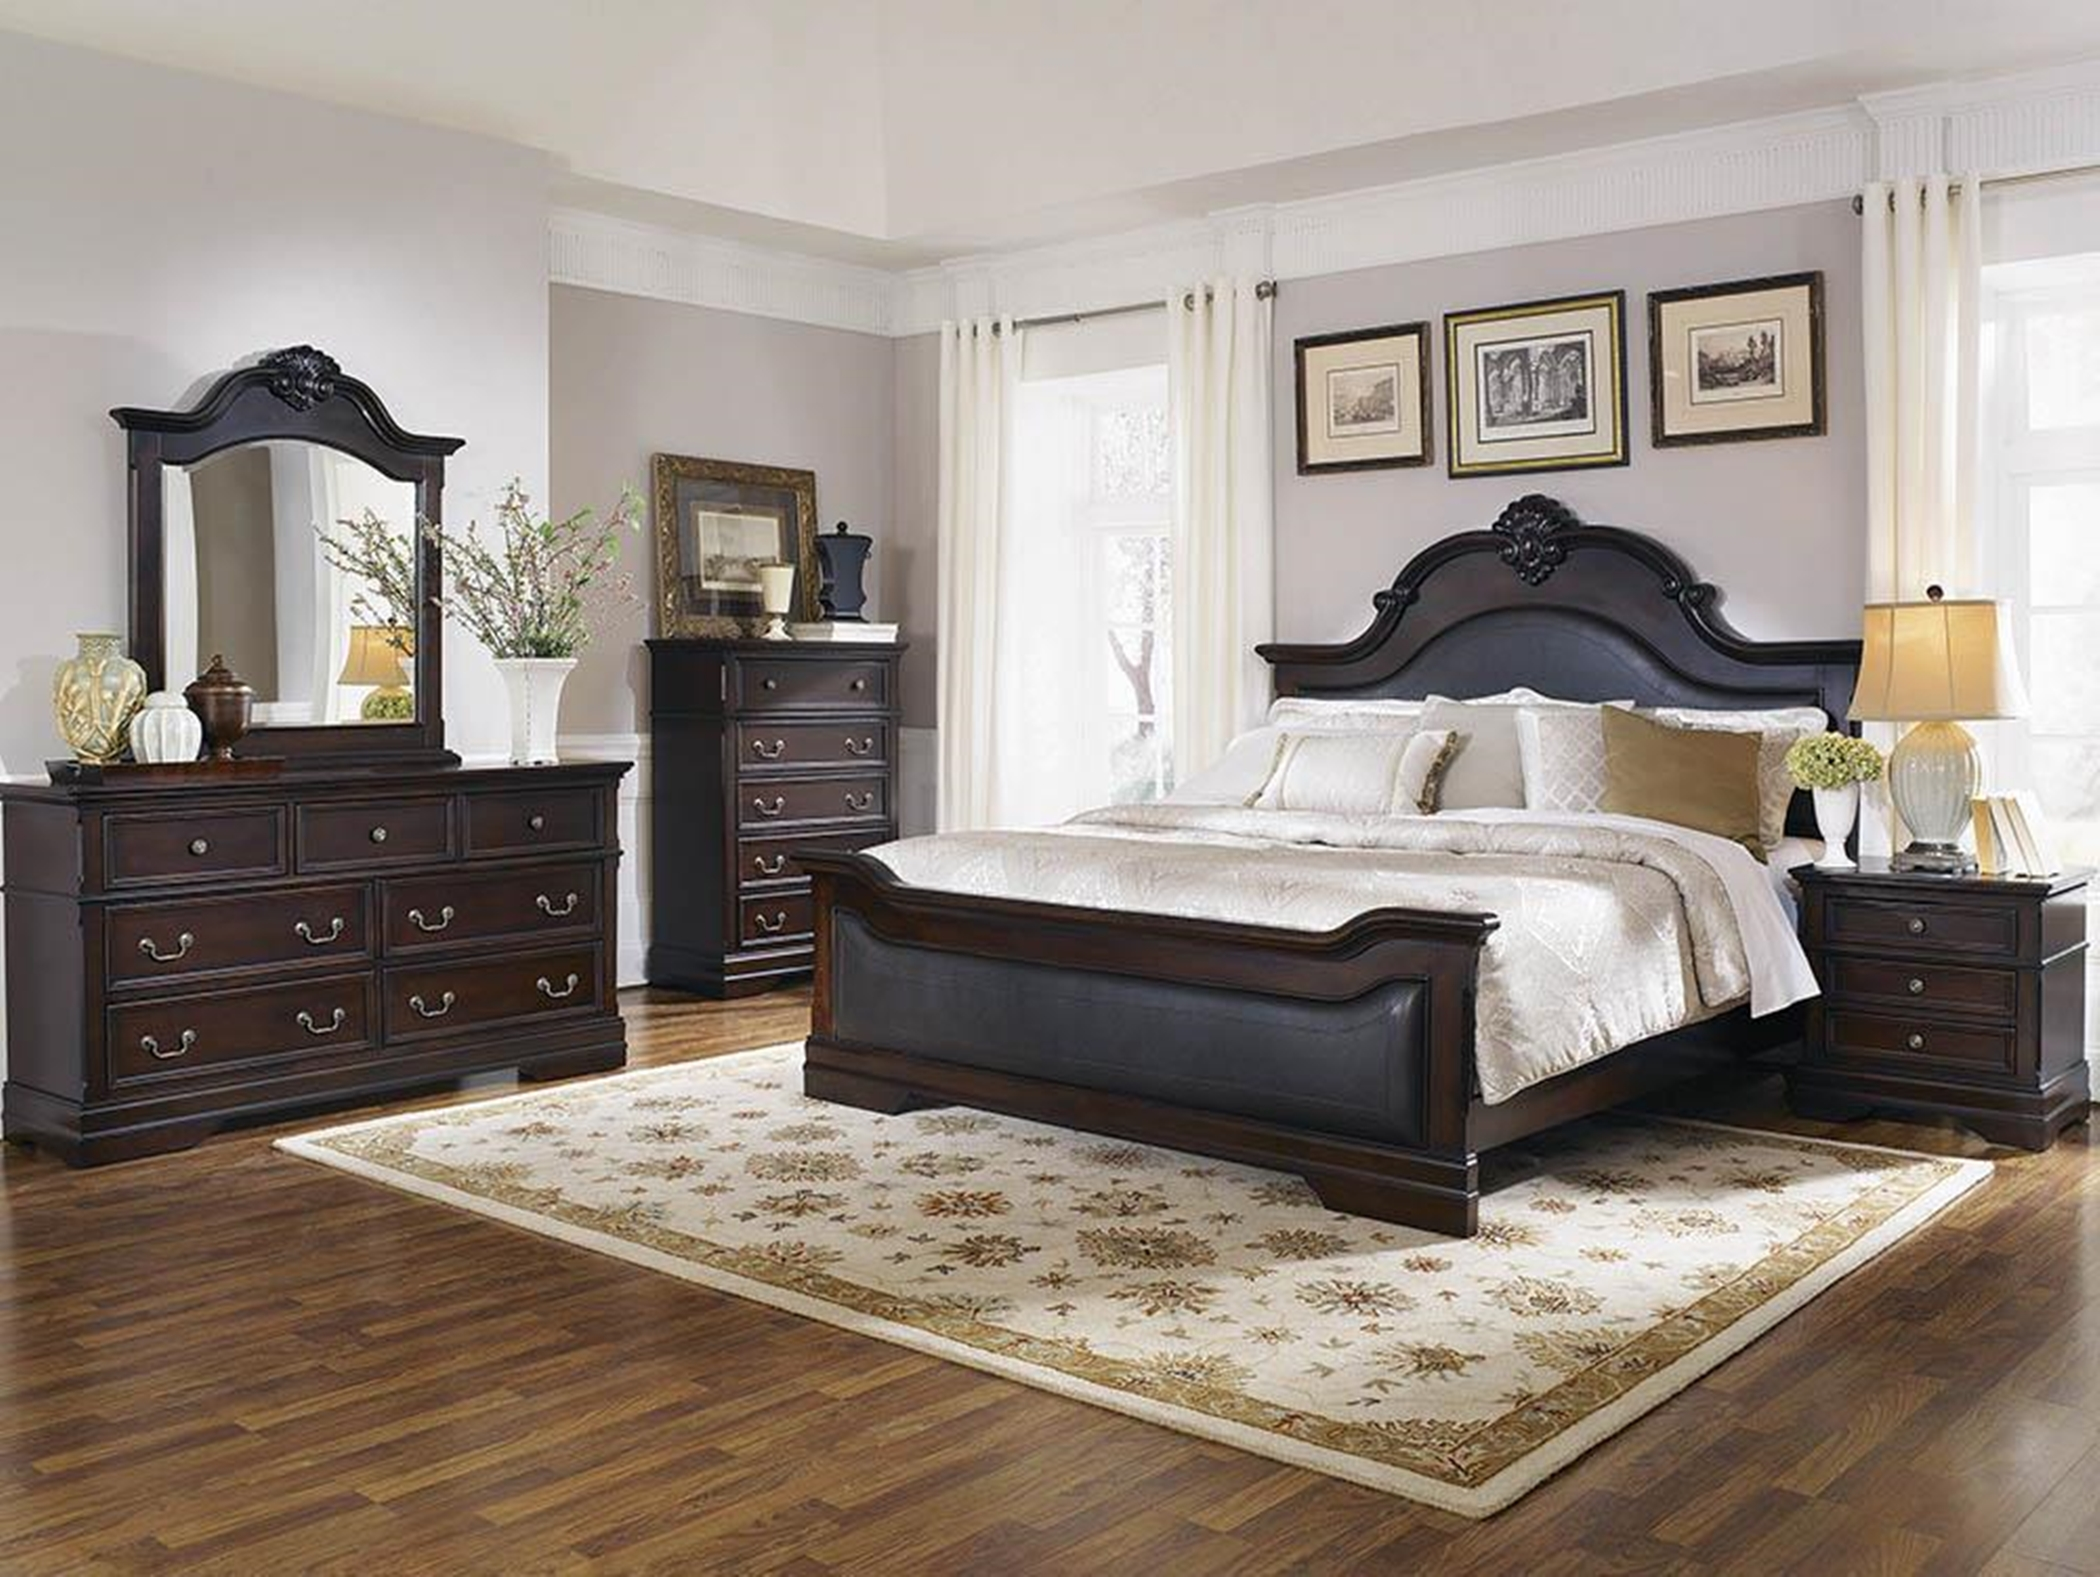 Cambridge Traditional E. King Bed